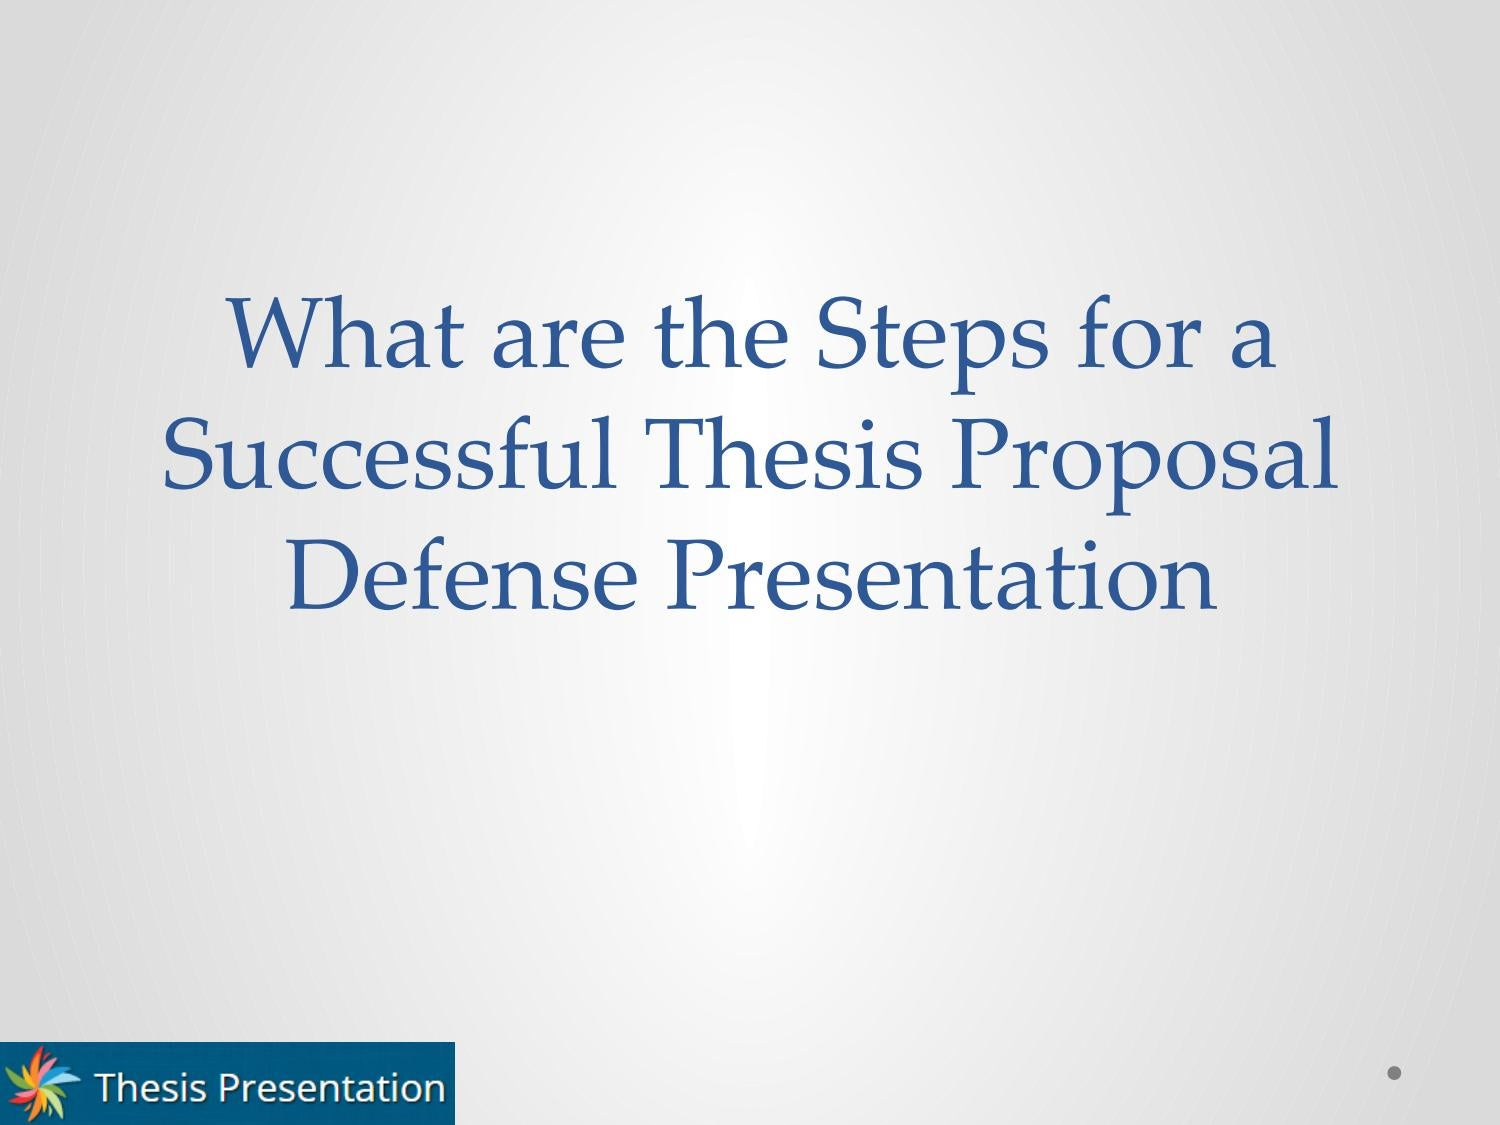 What Are The Steps For A Successful Thesis Proposal Defense Presentation By Thesis  Presentation - Issuu